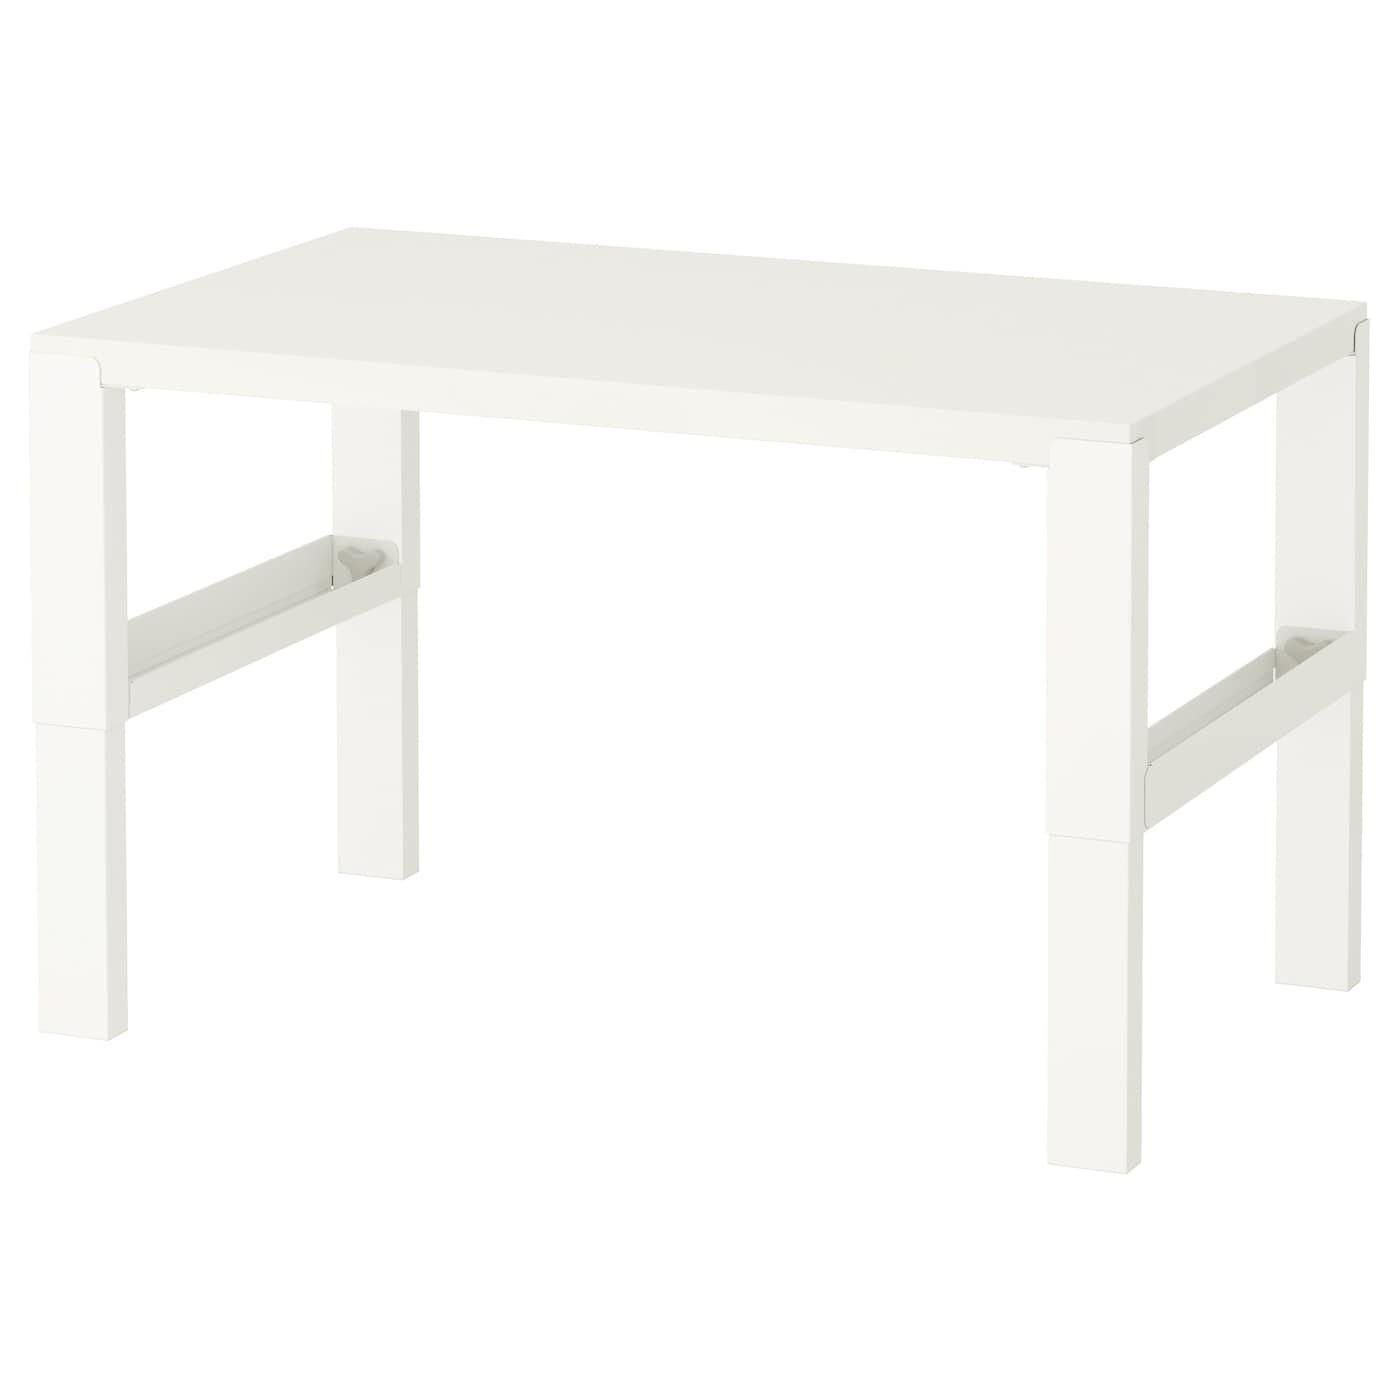 IKEA PÅHL desk This desk is designed to grow with your child, thanks to the three different heights.